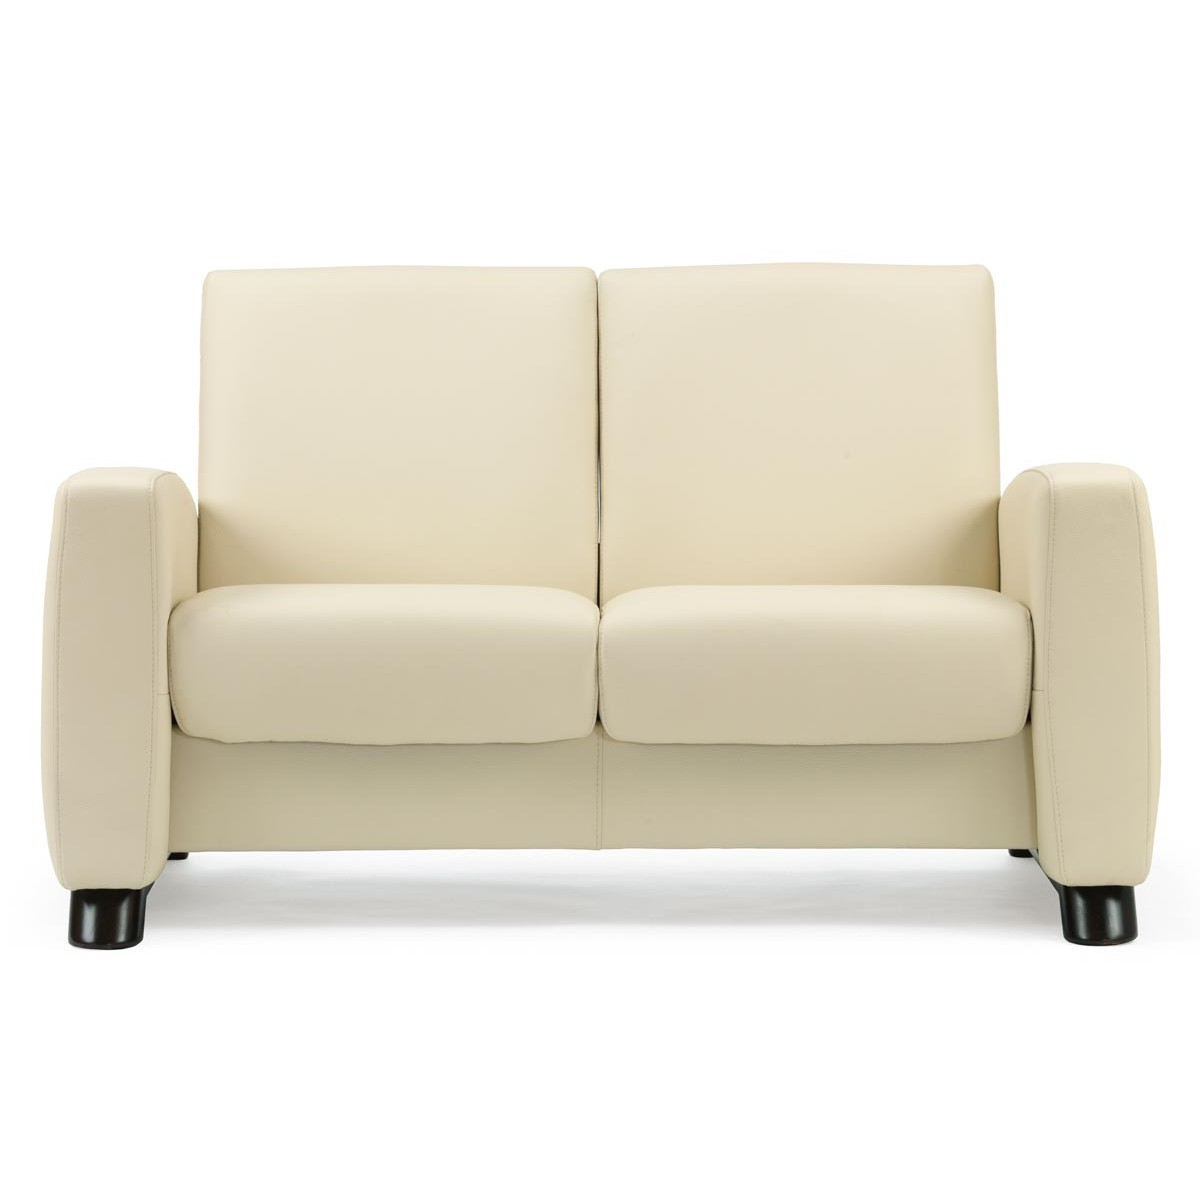 Stressless Arion Low Back Loveseat From 3 By Stressless Danco Modern